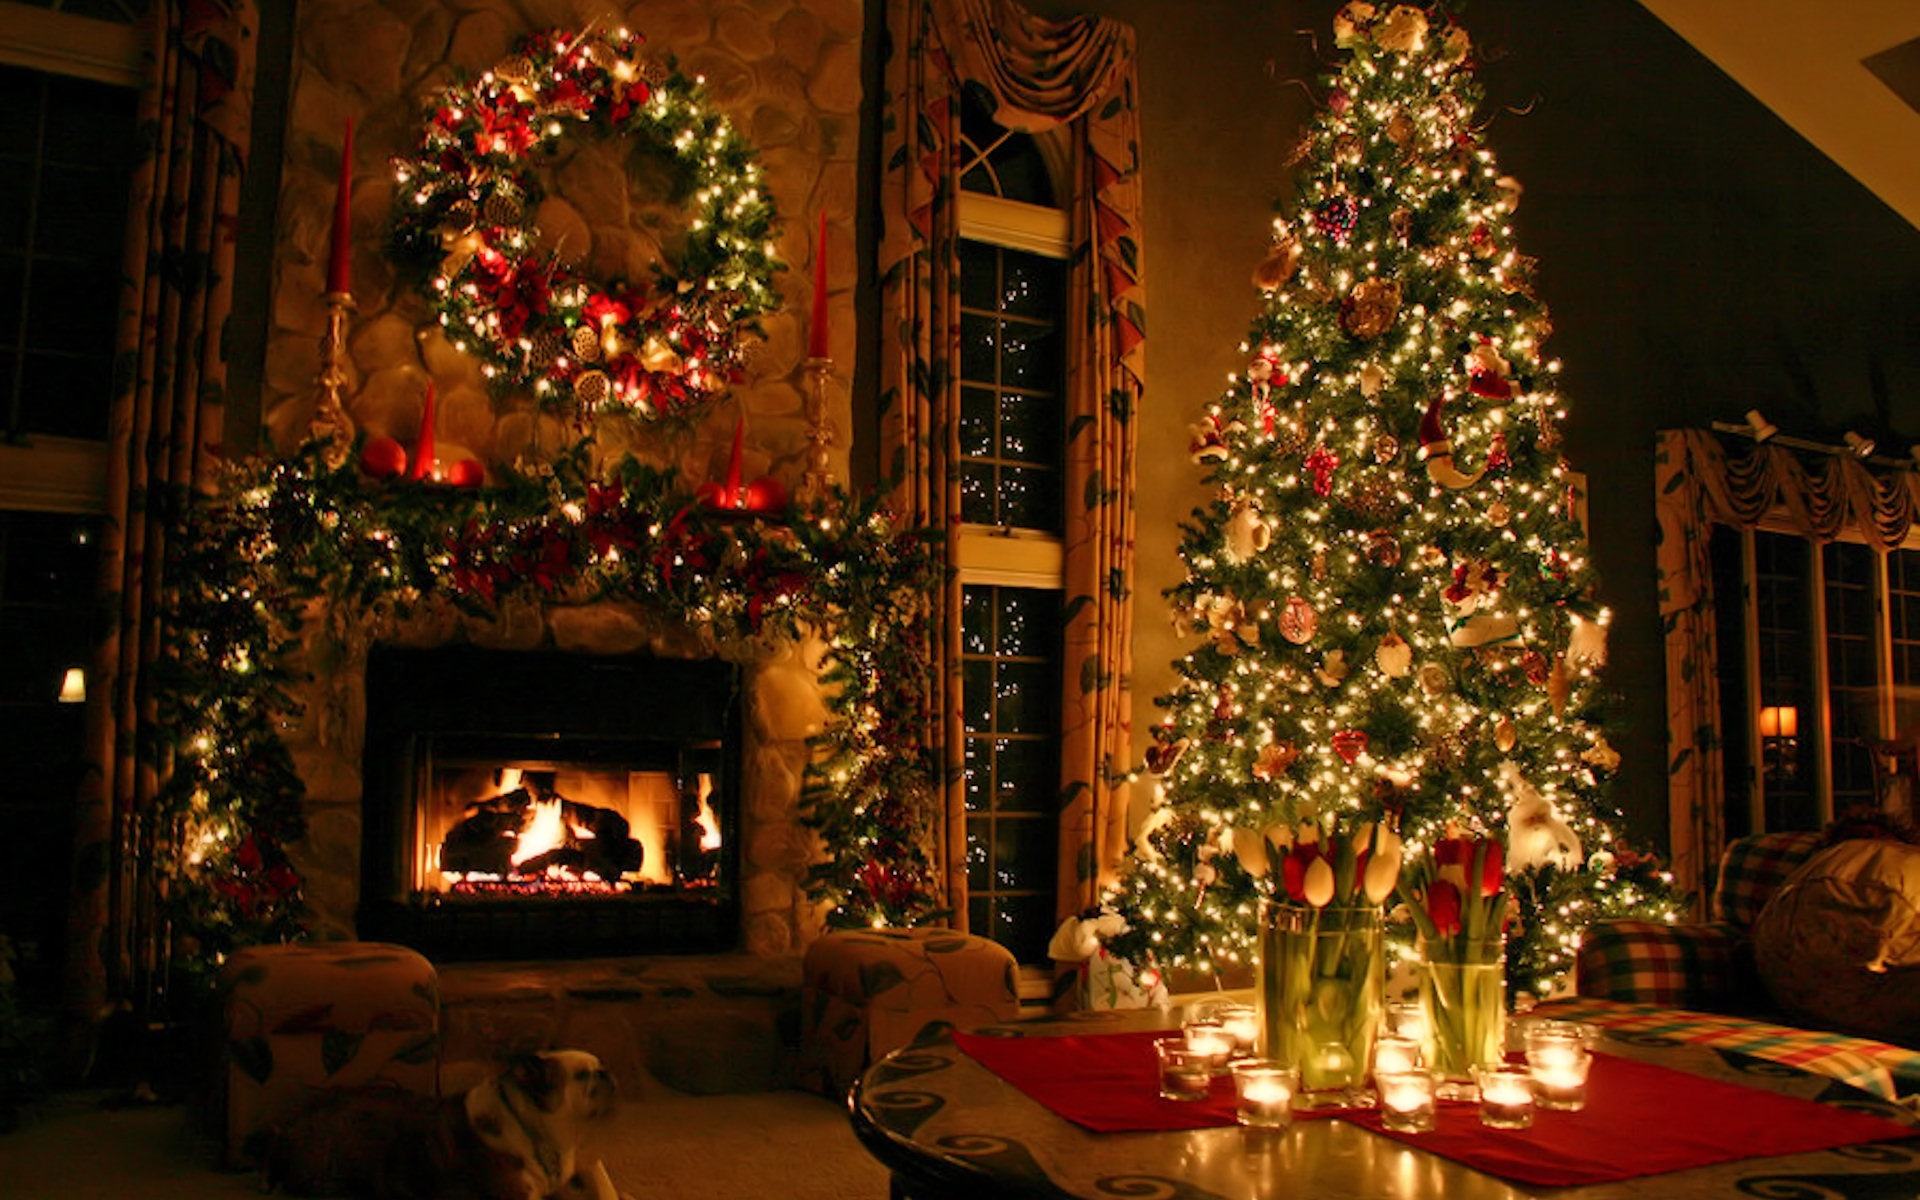 Beautiful Christmas Desktop Wallpaper 1920x1200